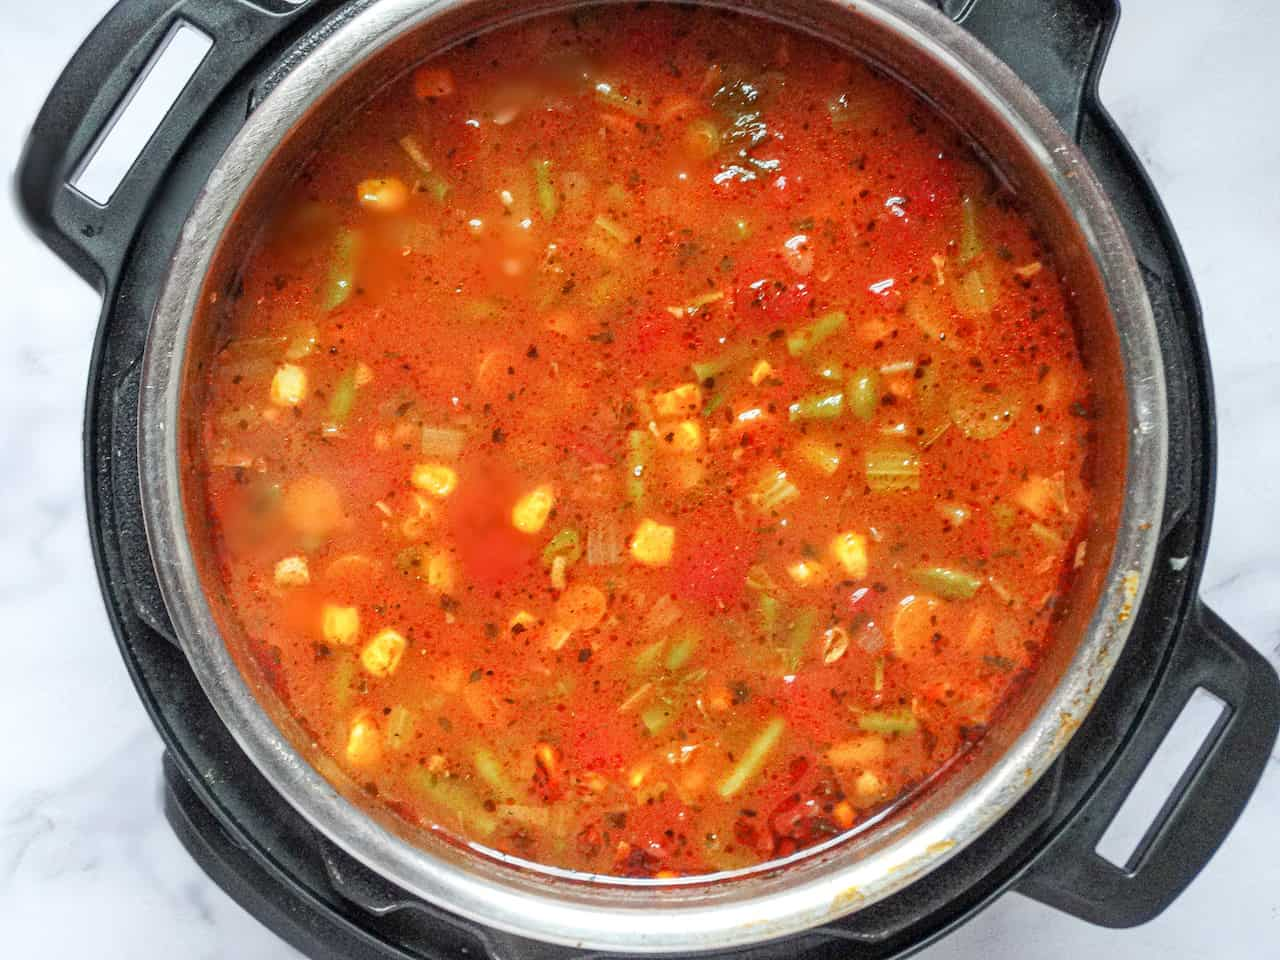 completed vegetable soup in an instant pot